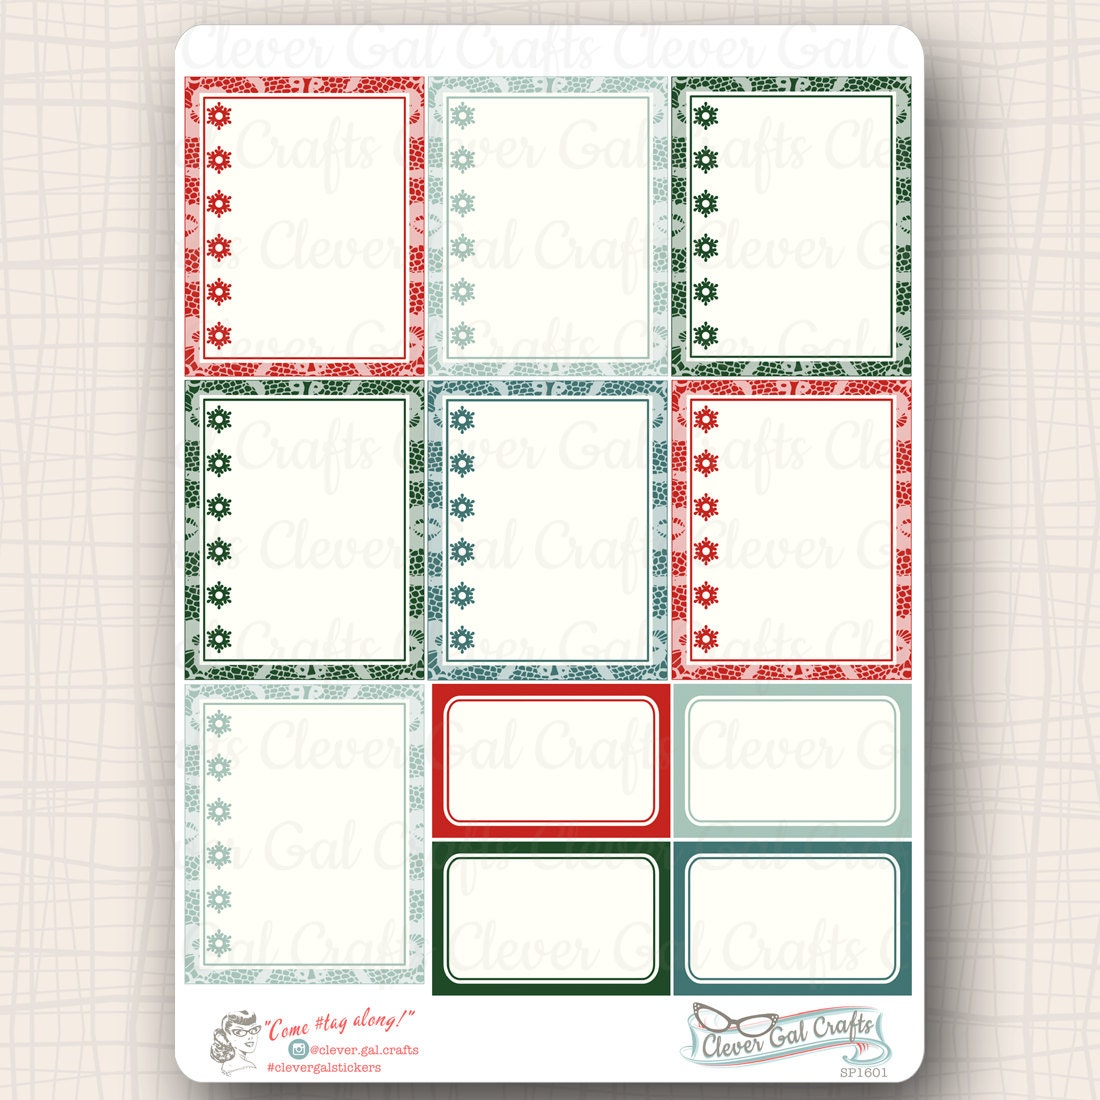 full box planner stickers woodland noel lacy checklists 11 stickers total sp1601 from. Black Bedroom Furniture Sets. Home Design Ideas